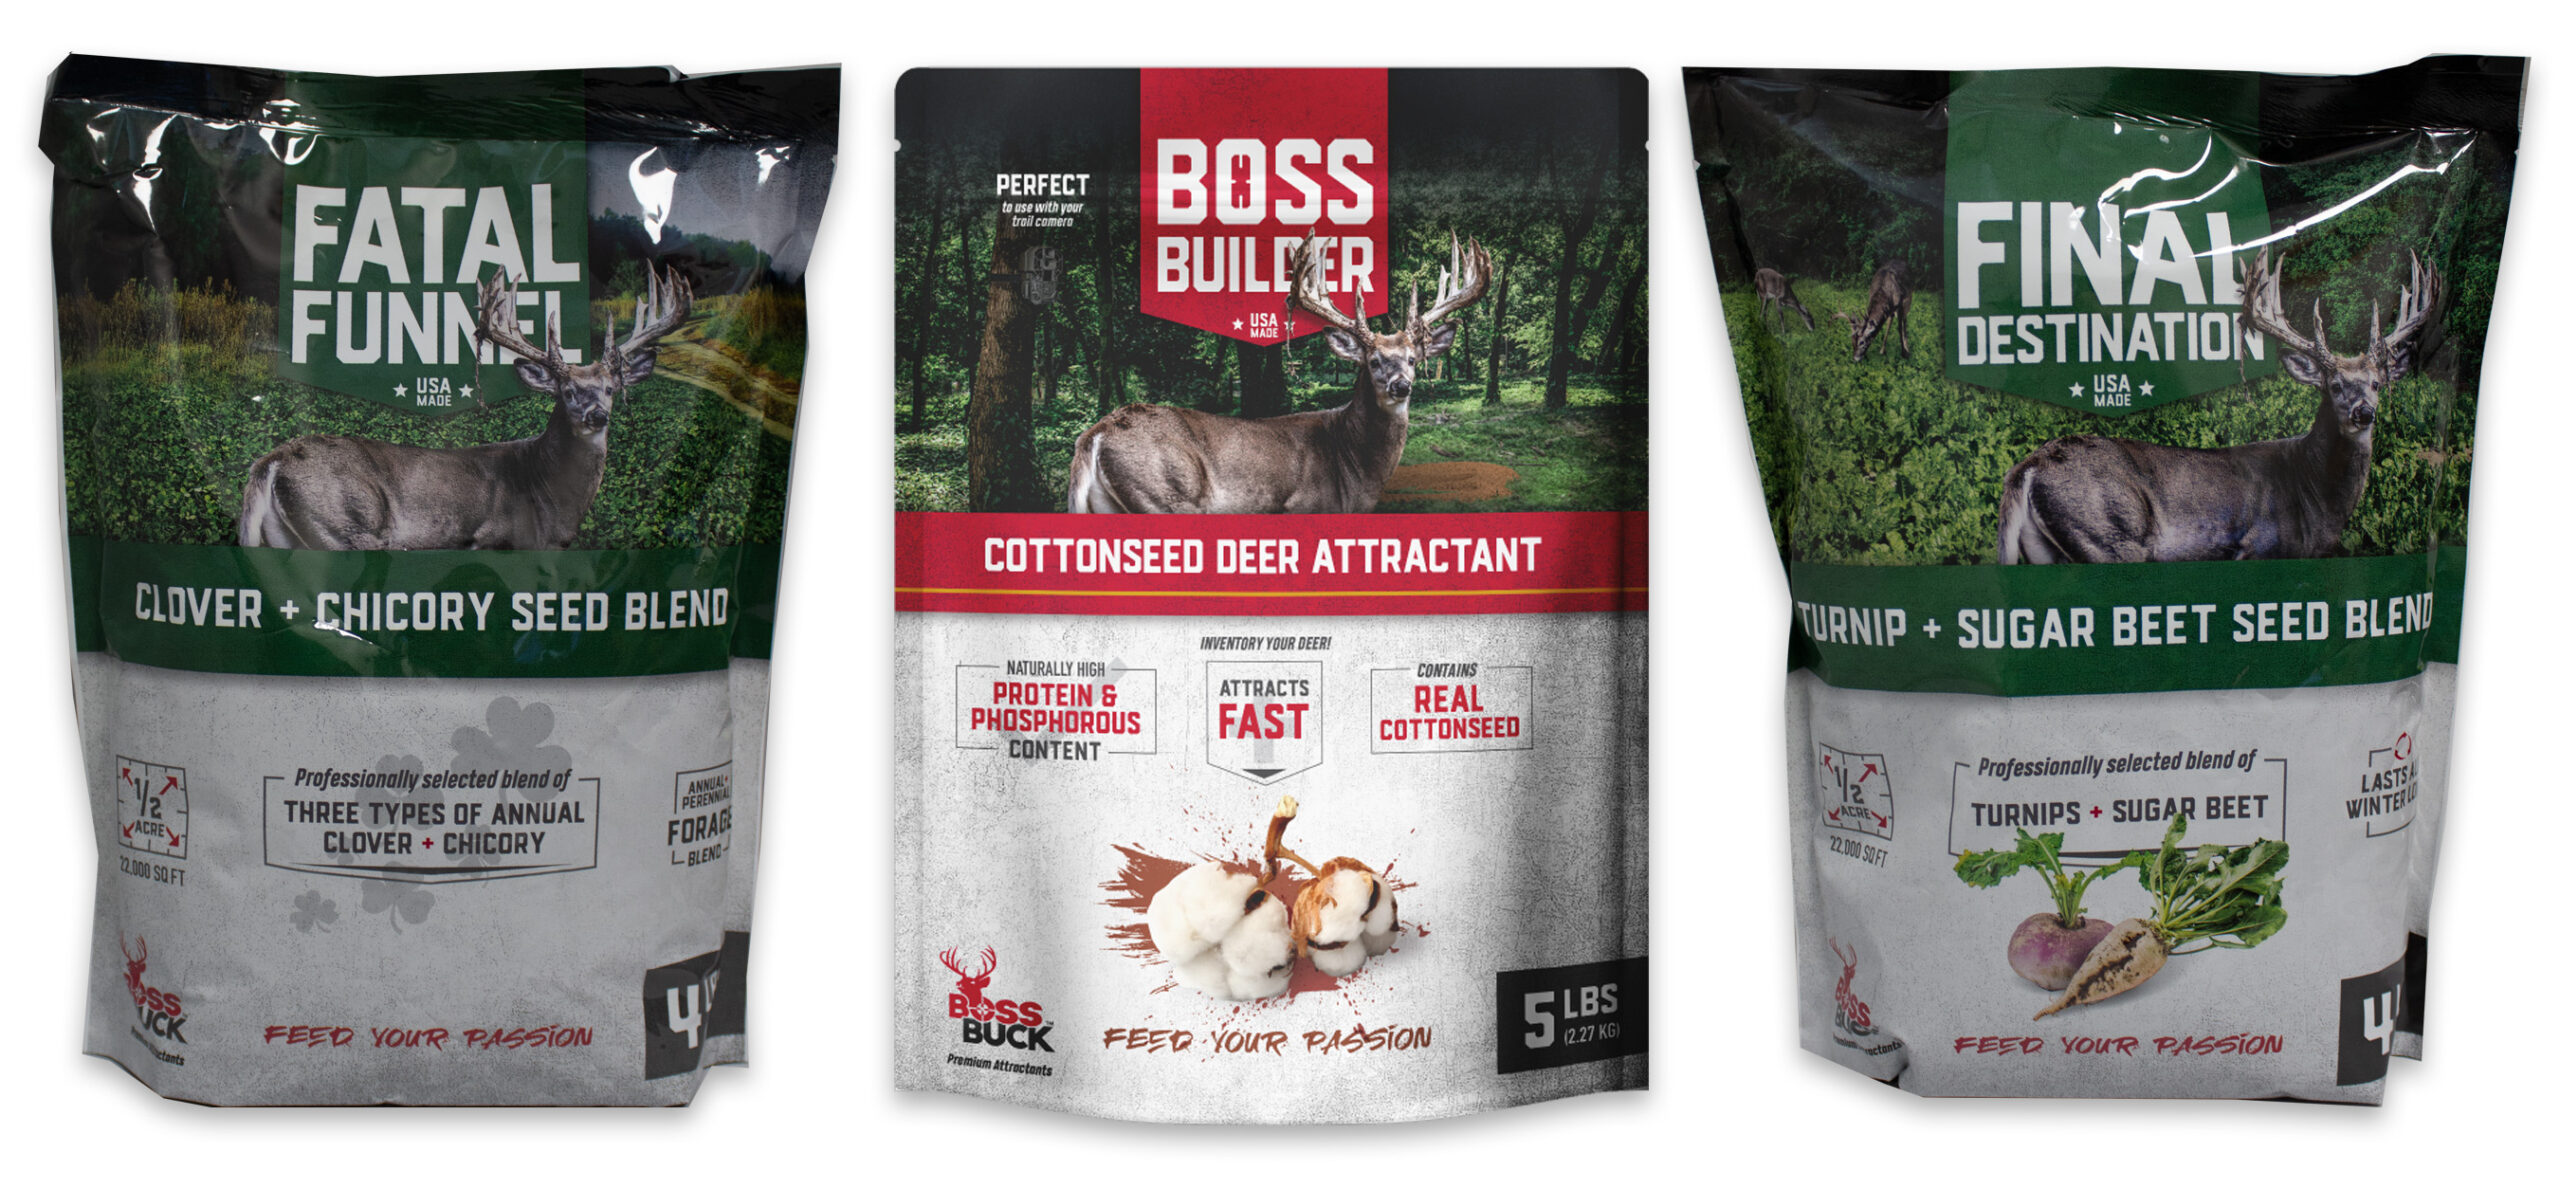 Hunting attractant